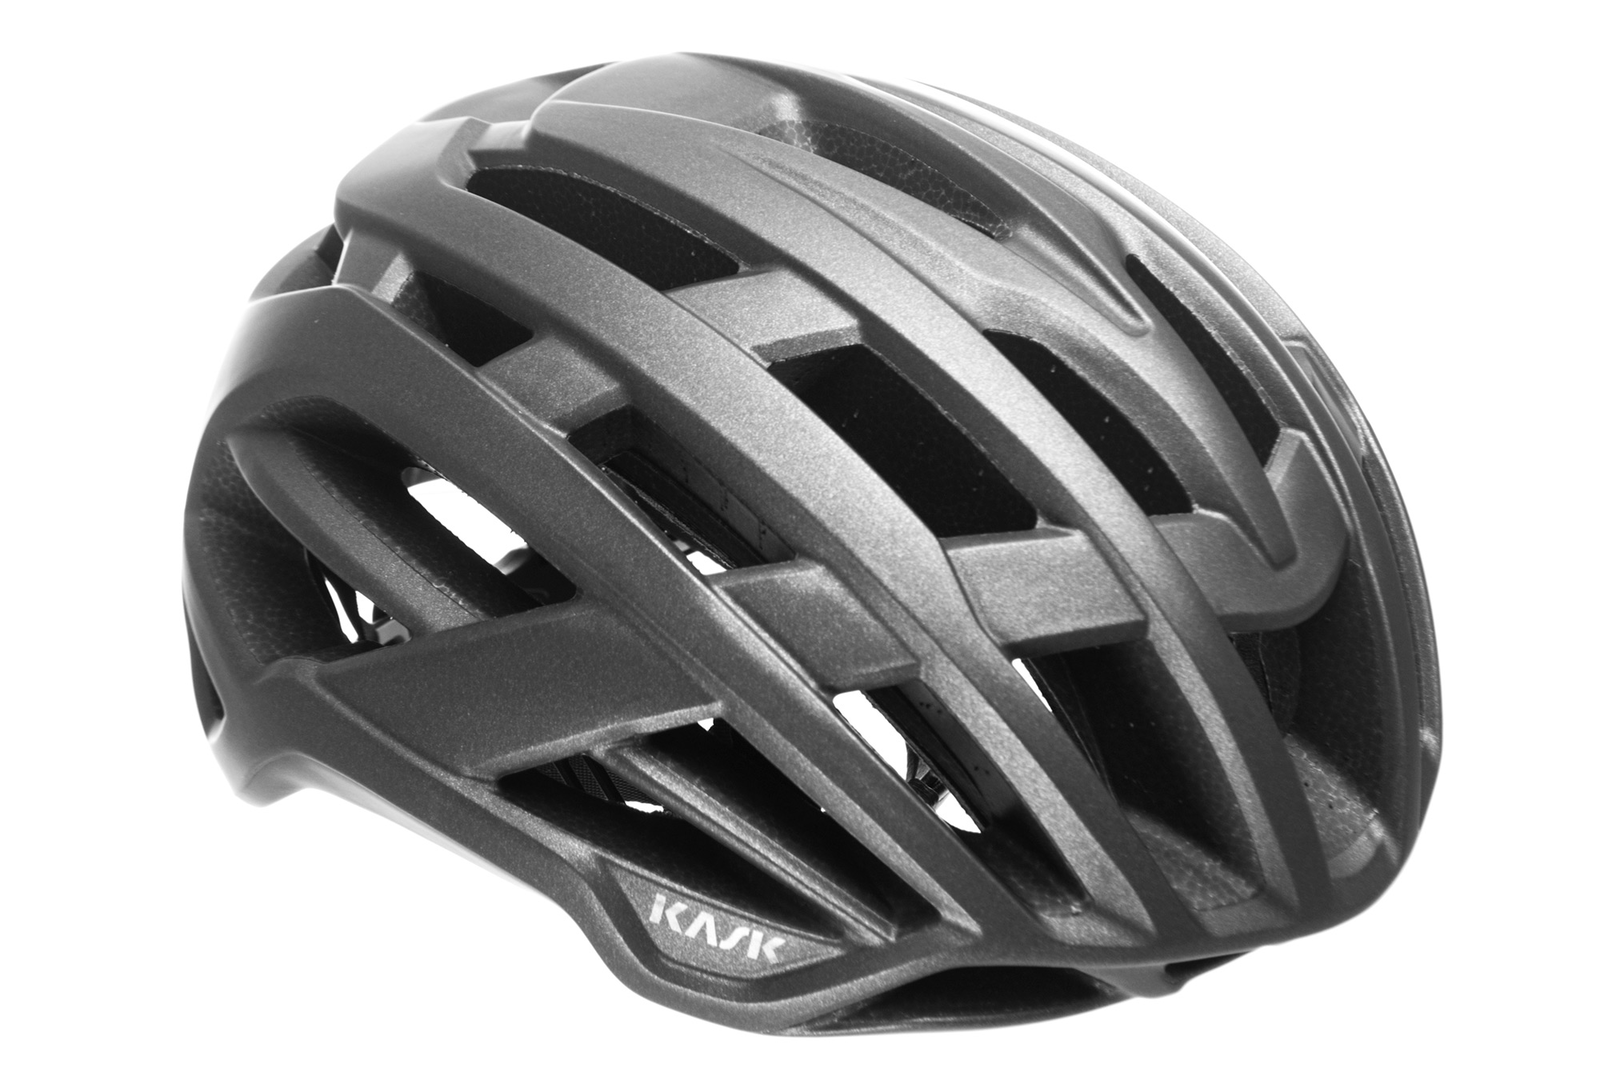 Casco Kask Valegro grau Antracite